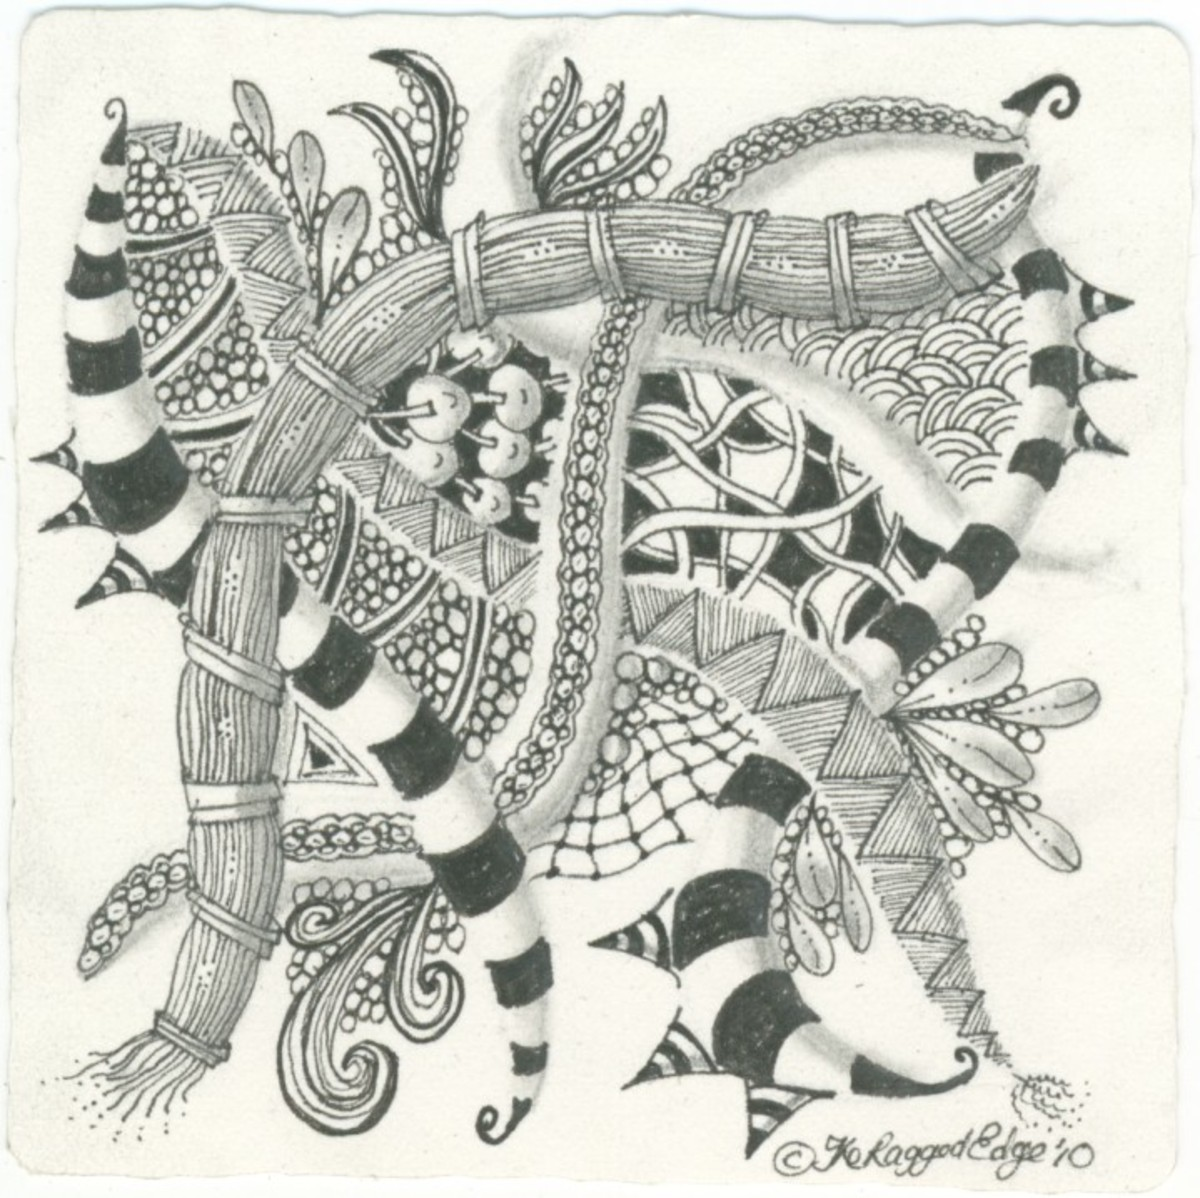 How to Create a Zentangle or Zendoodle